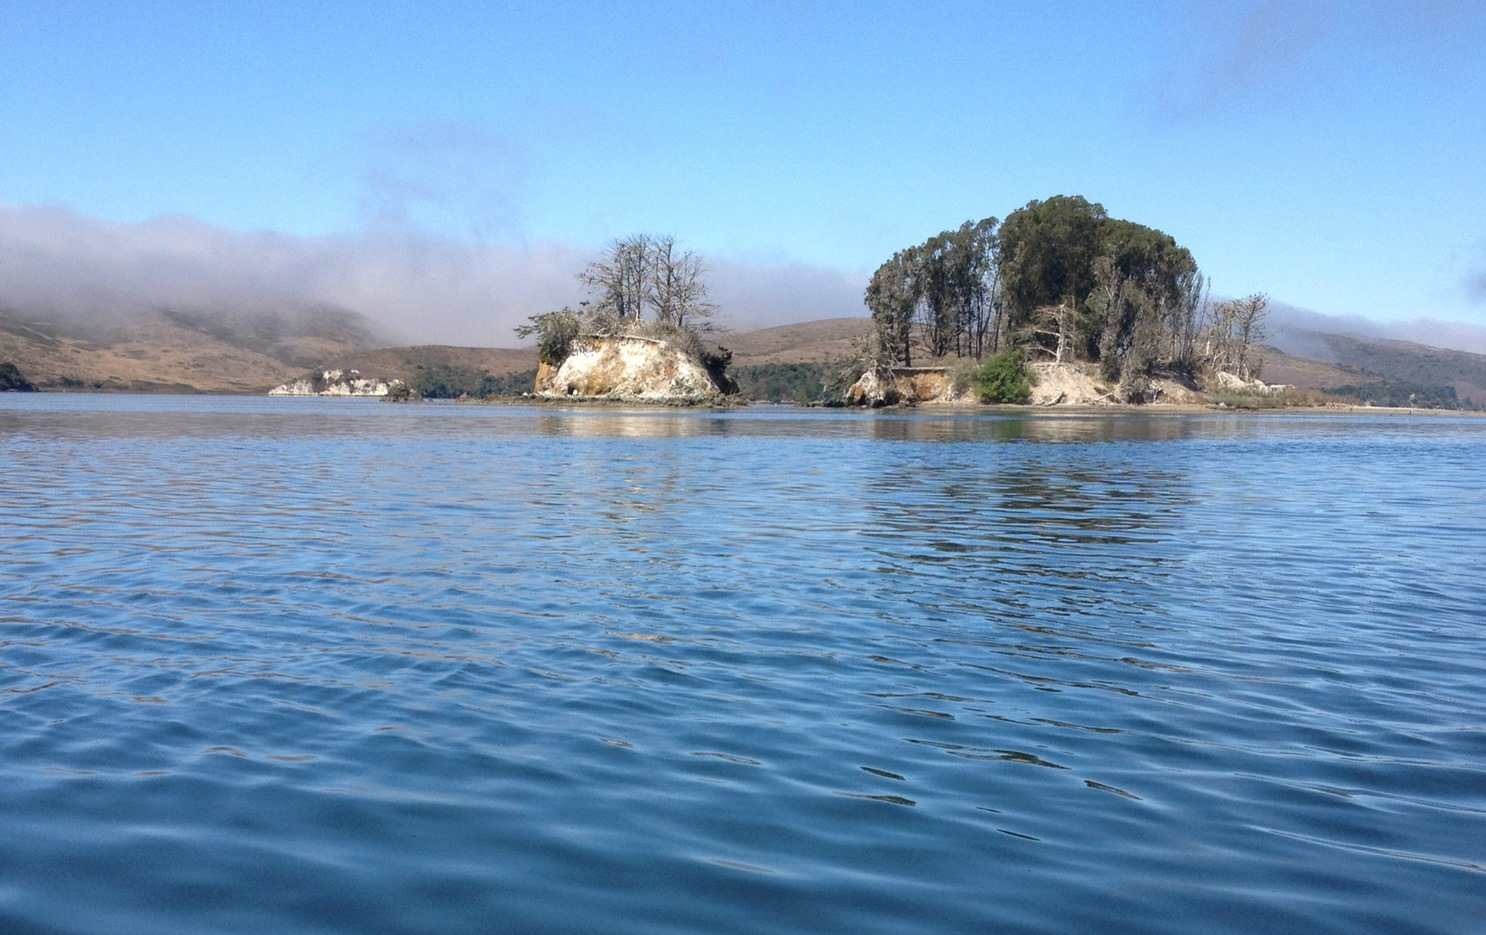 The view of Hog Island and Piglet from my kayak.